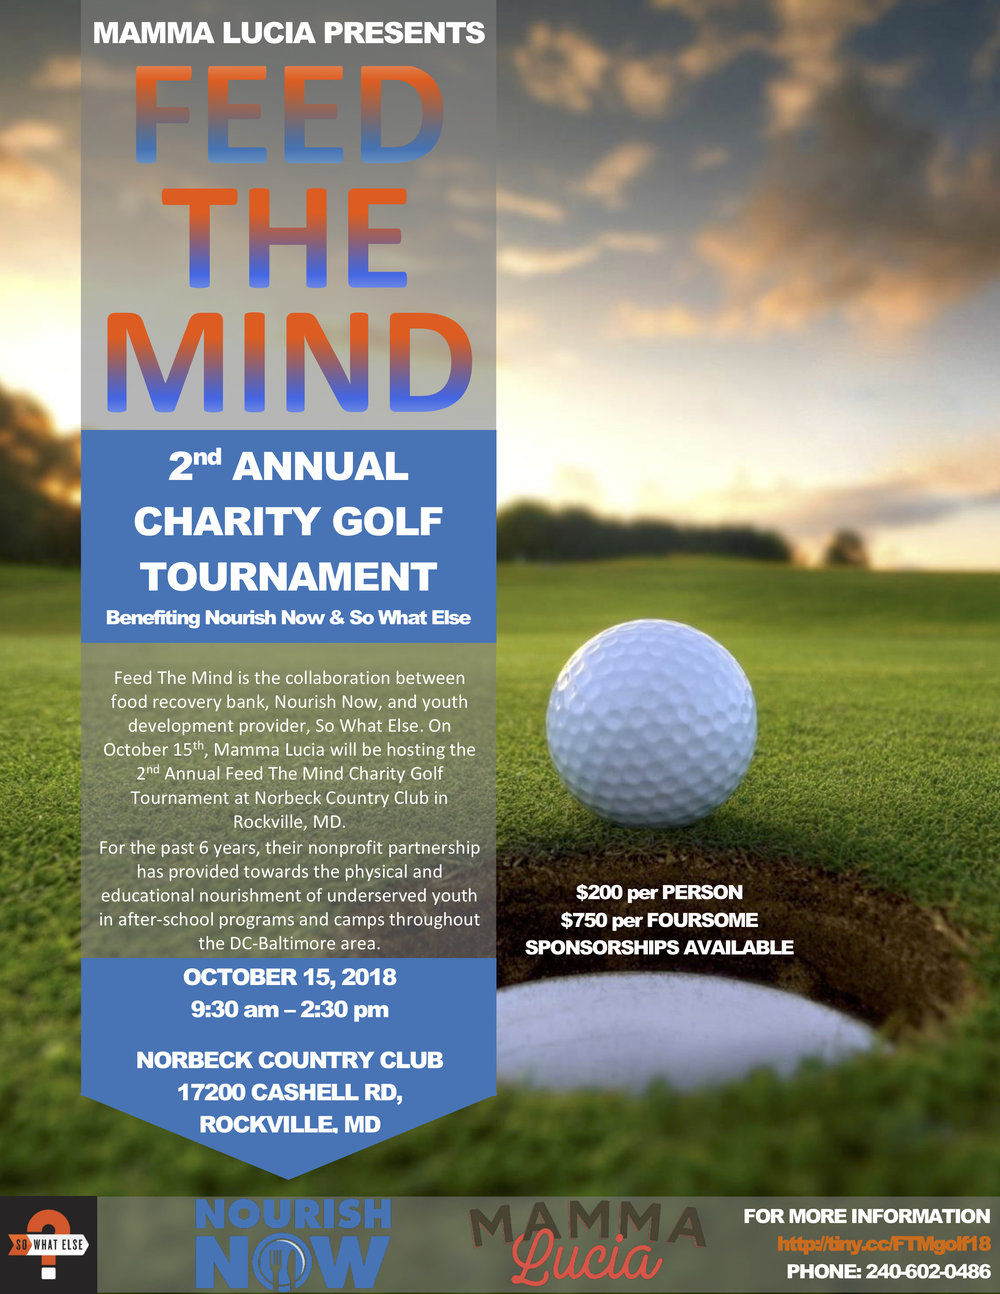 UPDATE 2nd Annual Charity Golf Tournament Cover (1).jpg